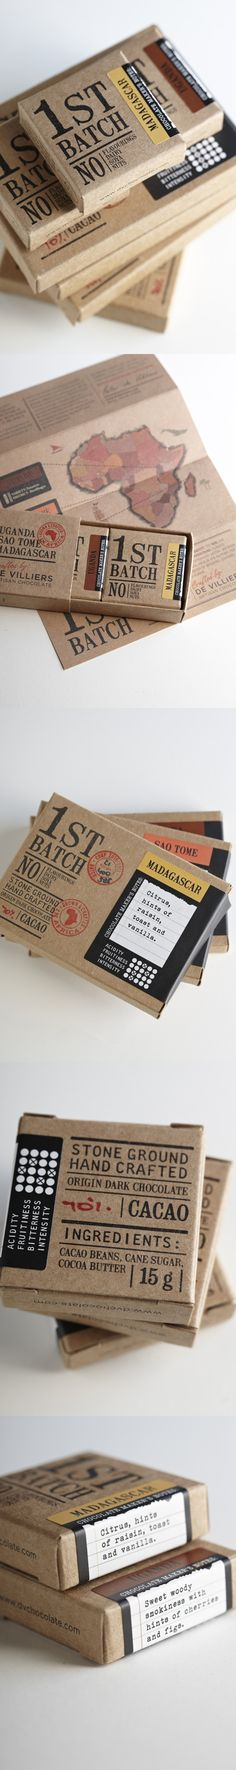 I really like the idea of stamping the front of the boxes with our logo then having the type of soap be on a wrap around label. This looks really professional and cute!